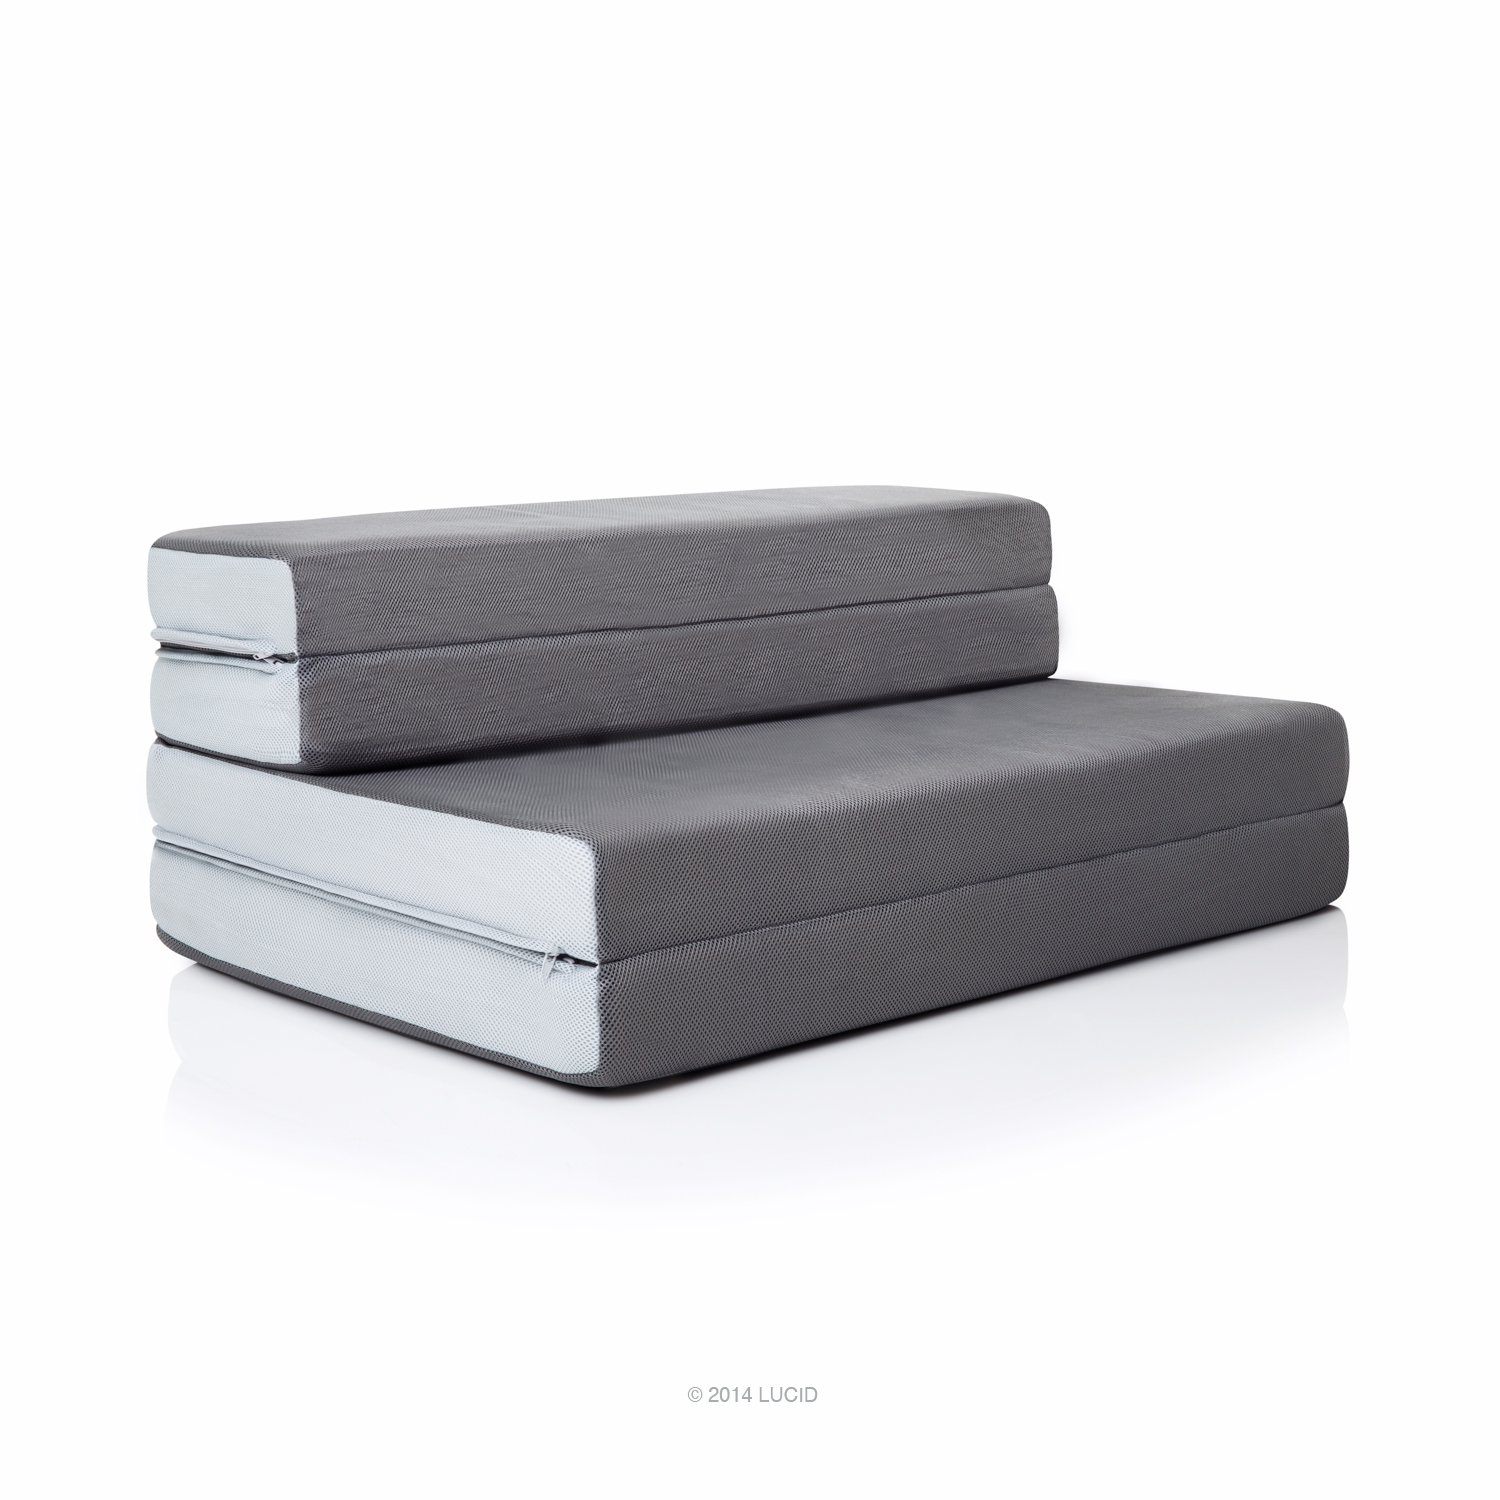 LUCID 4 inch Folding Mattress - Sofa Chair Combo